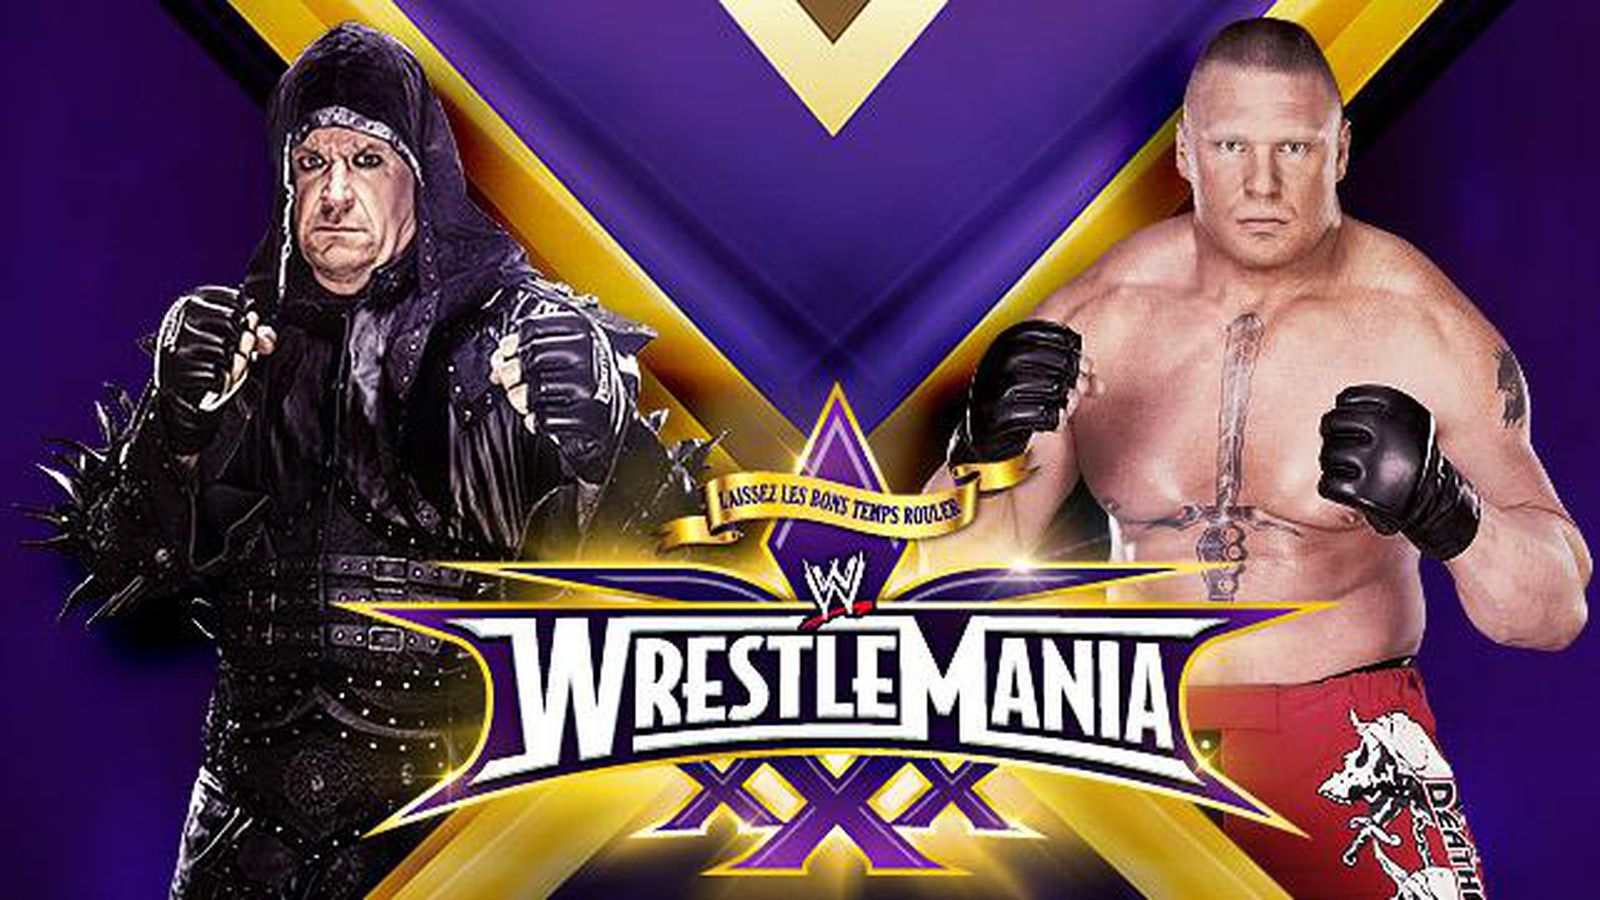 WrestleMania 30: Undertaker vs. Brock Lesnar Predictions ...